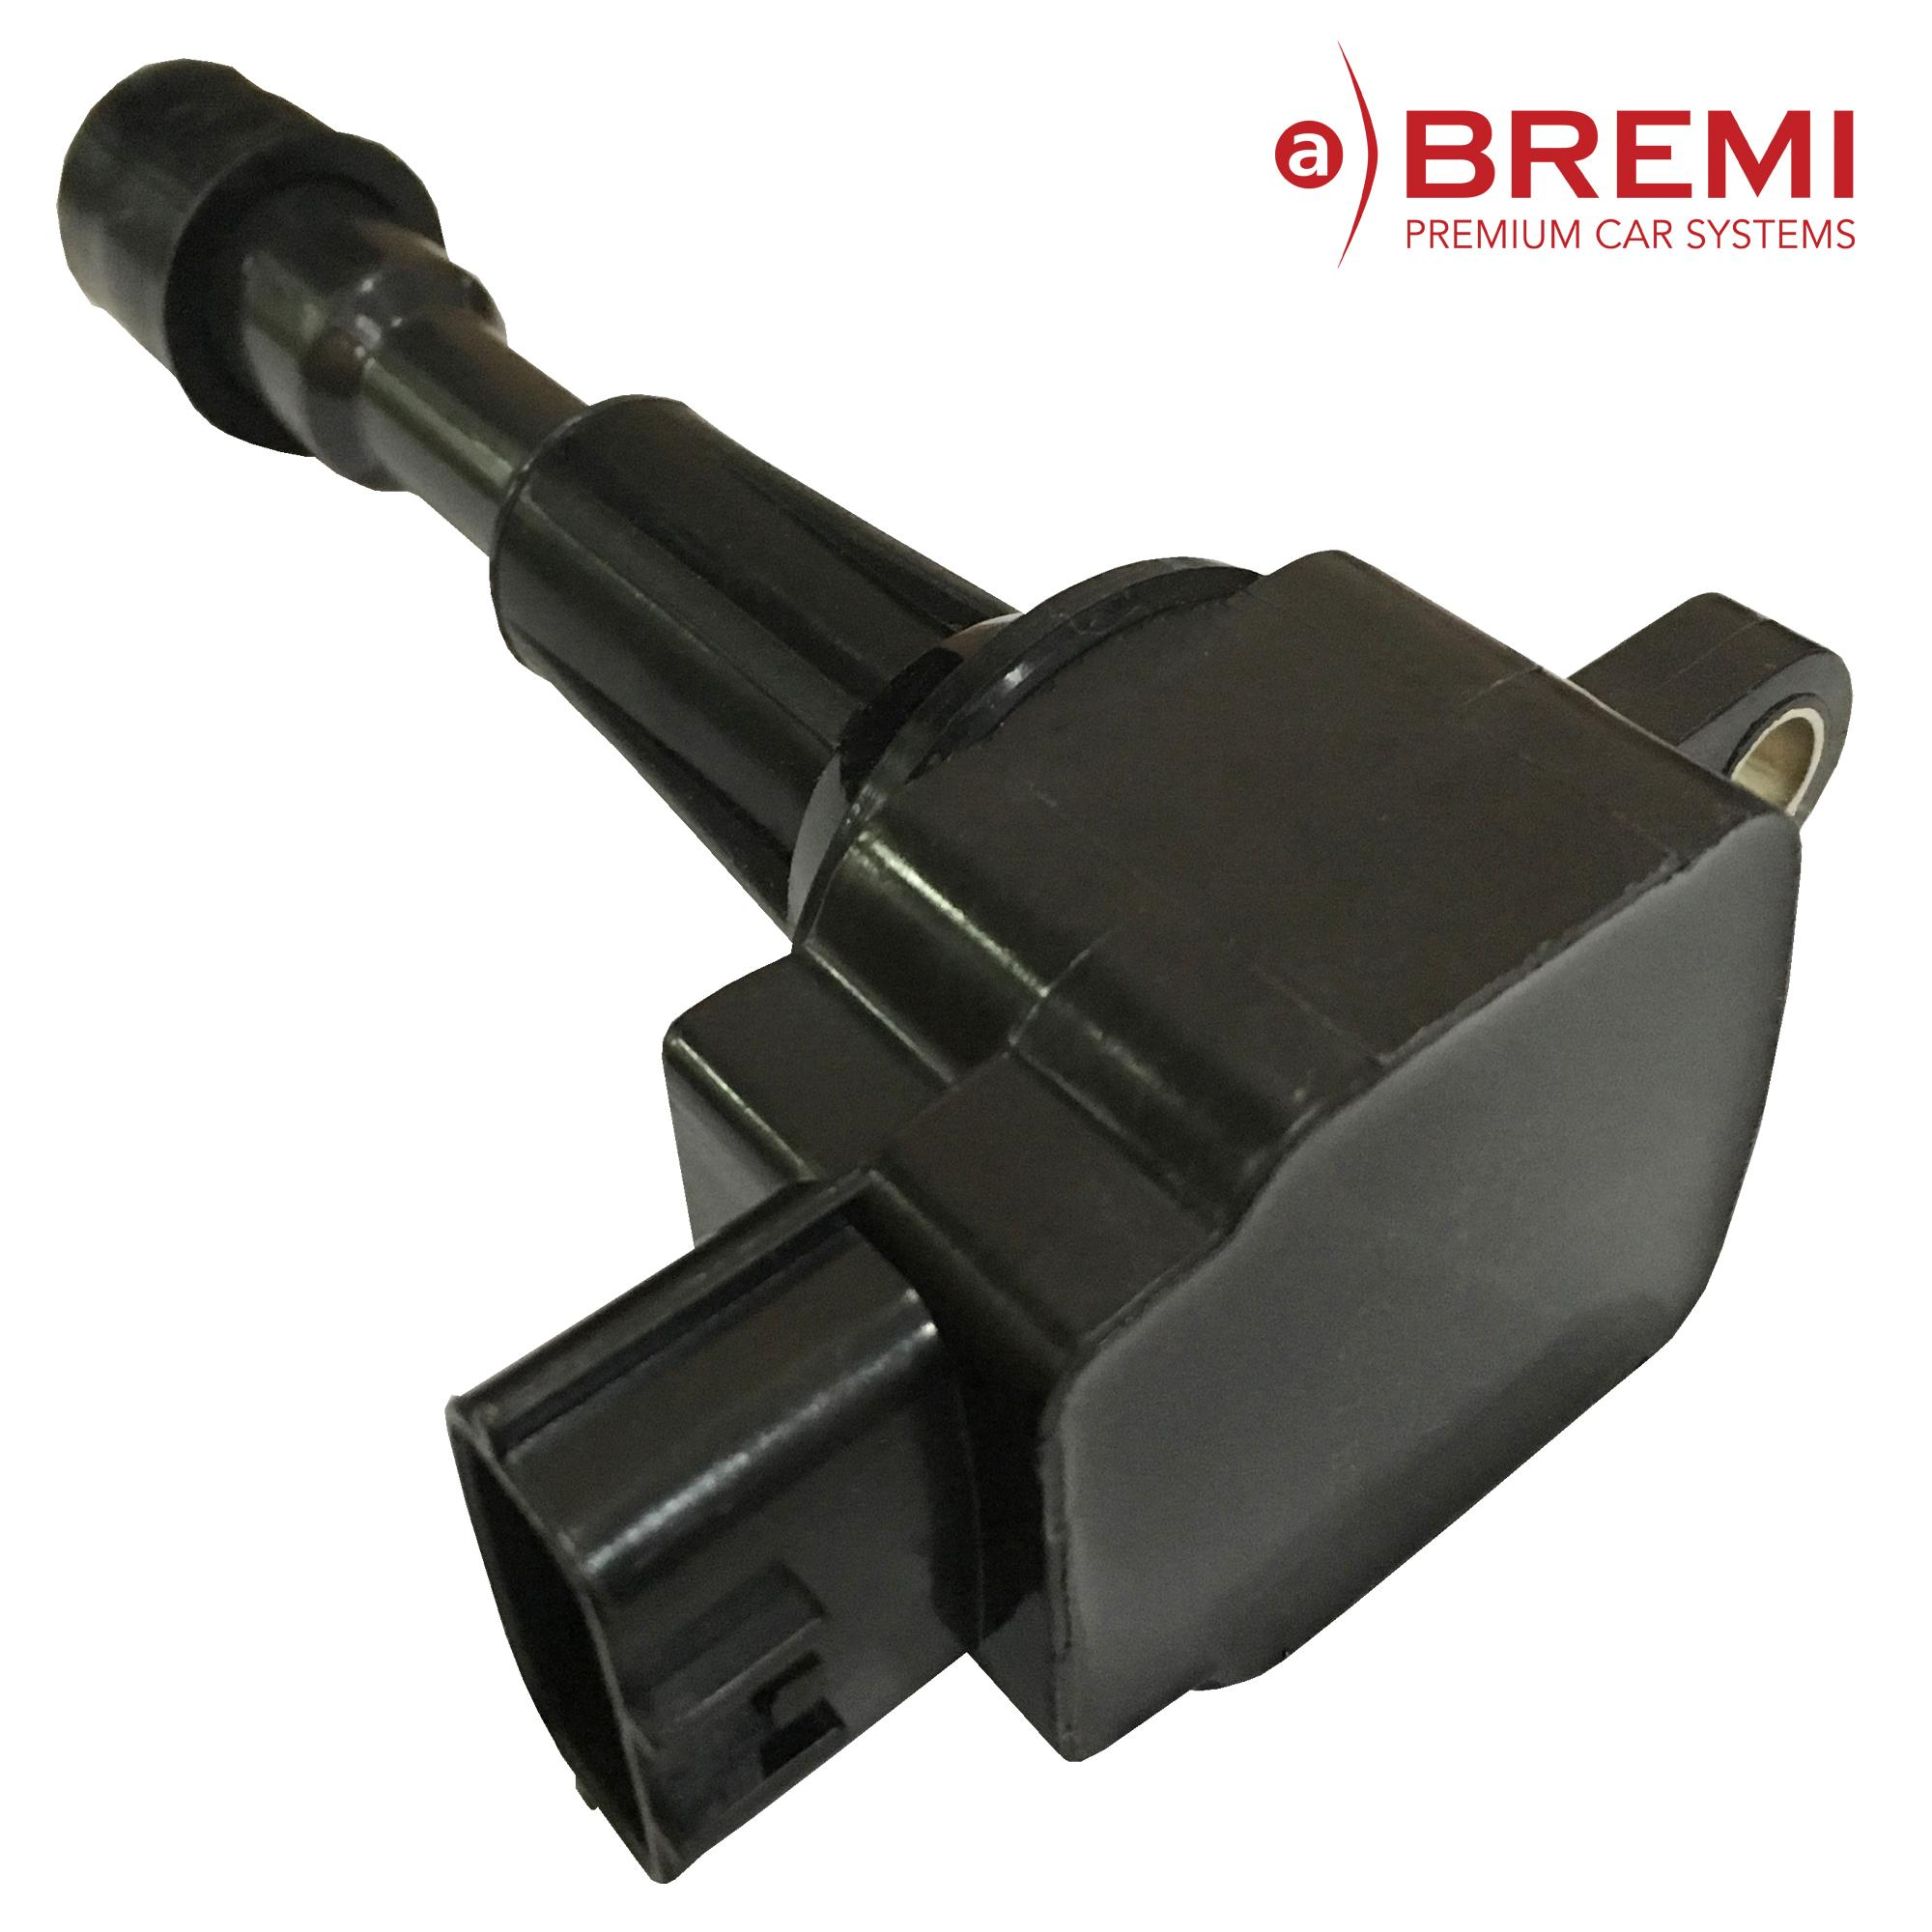 Ignition Coils For Sale Automotive Online Brands Prices. Bremi Ignition Coil For Mazda 3 16 20042013. Mitsubishi. Mitsubishi Lancer 2006 Ignition Coil Diagram At Scoala.co